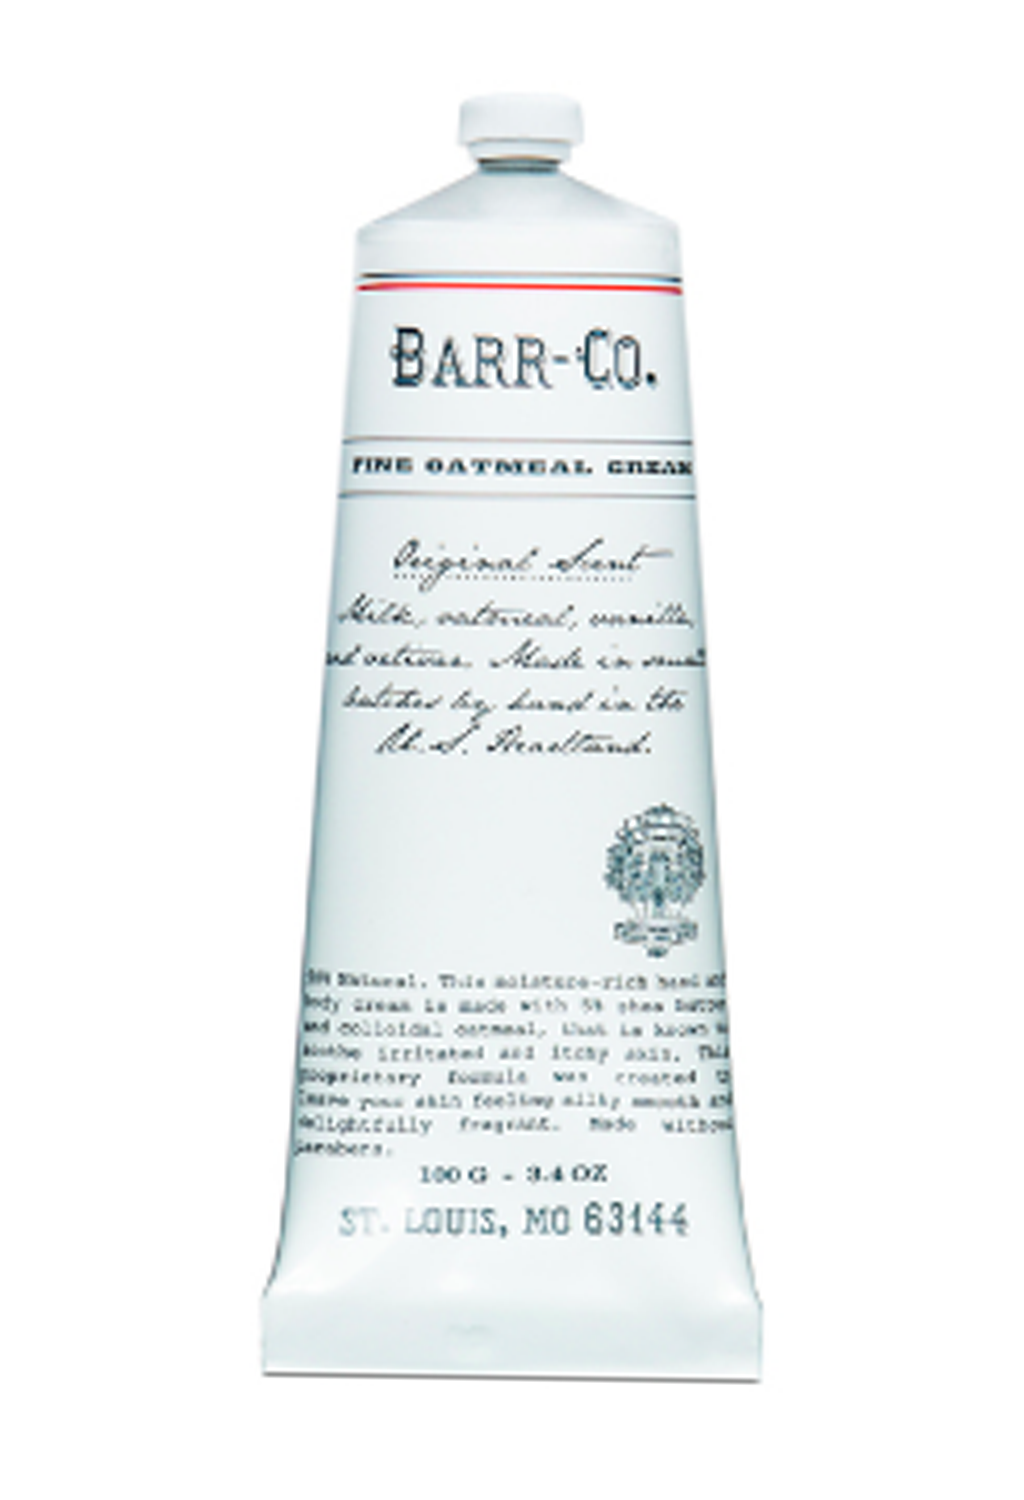 Barr Co. Original Scent Hand and Body Cream - RUST & Co.